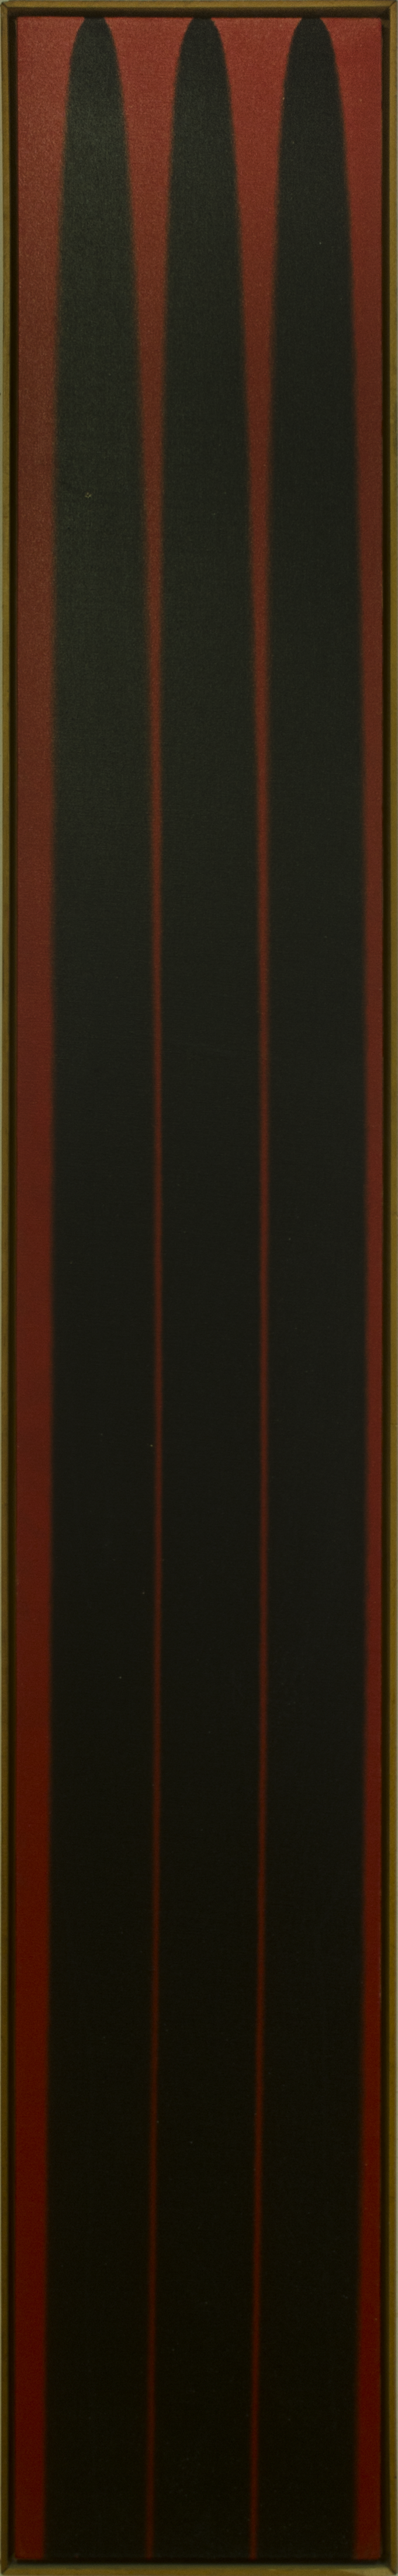 POUR-BLACK RED1974 ©acrylic paint on primed canvas